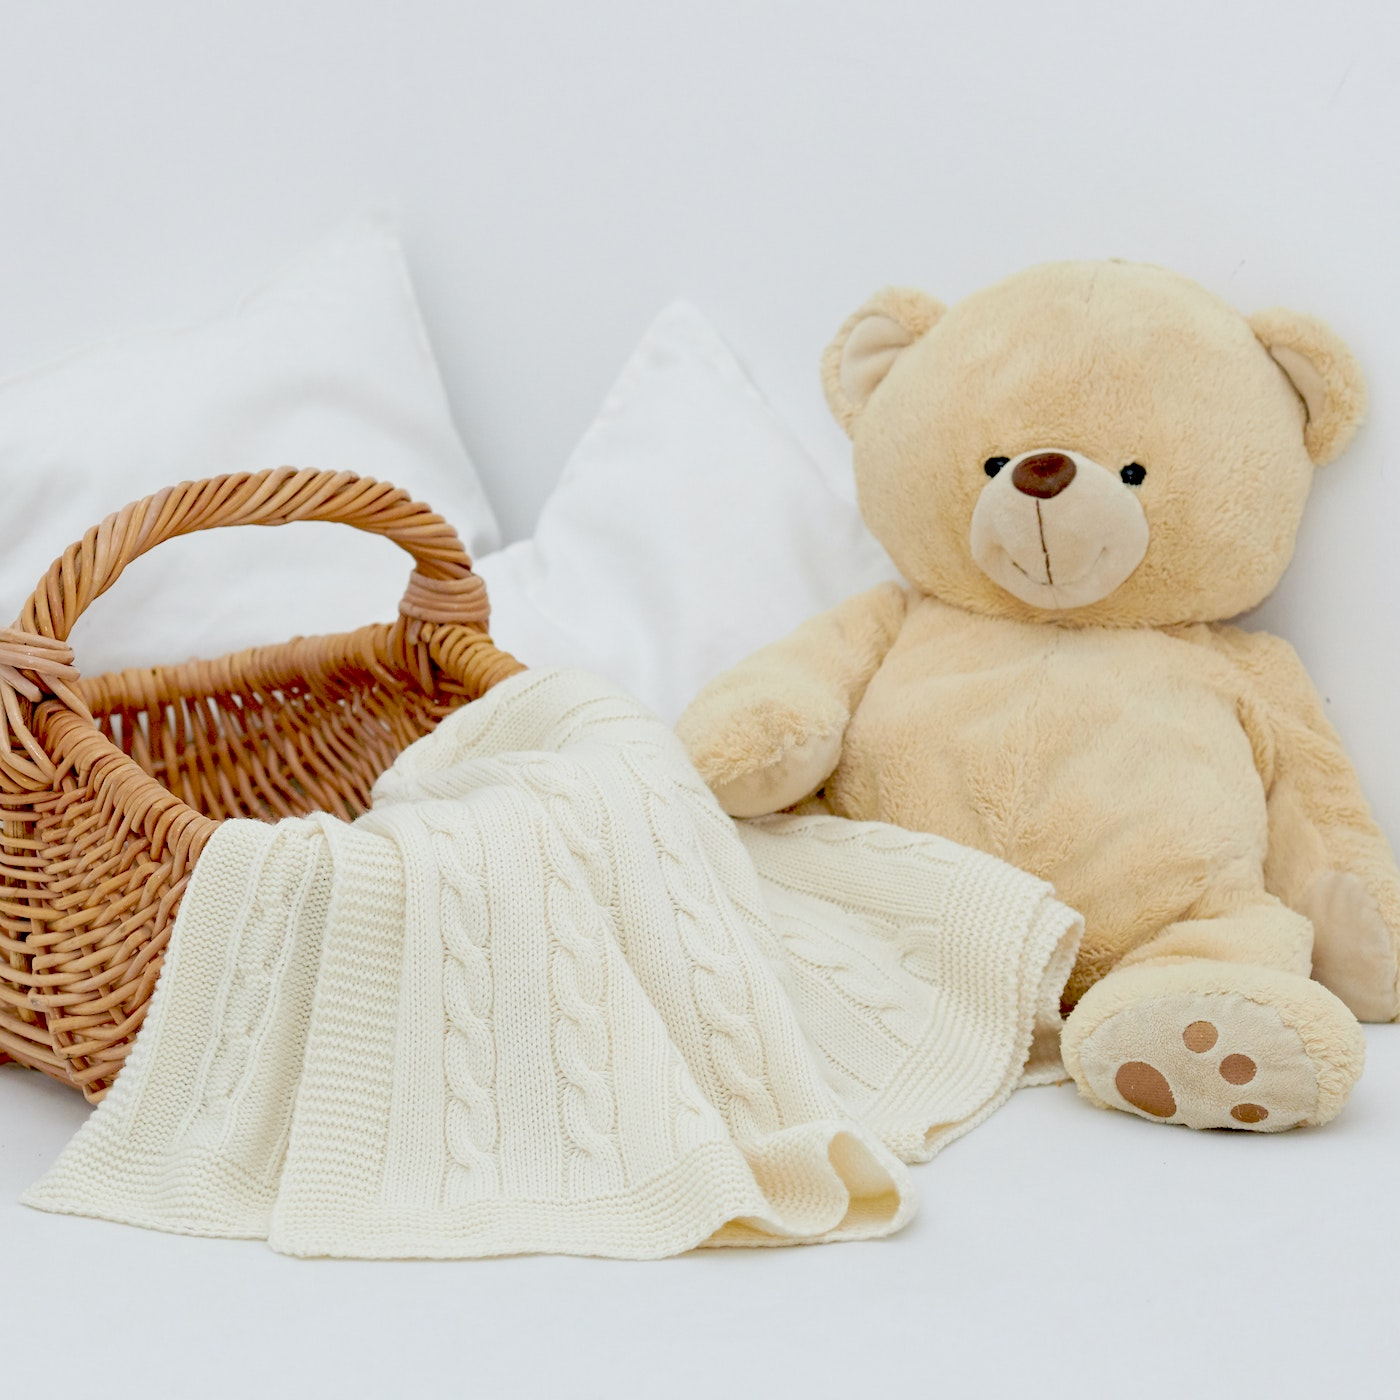 Baby room with basket, blanket, and teddy